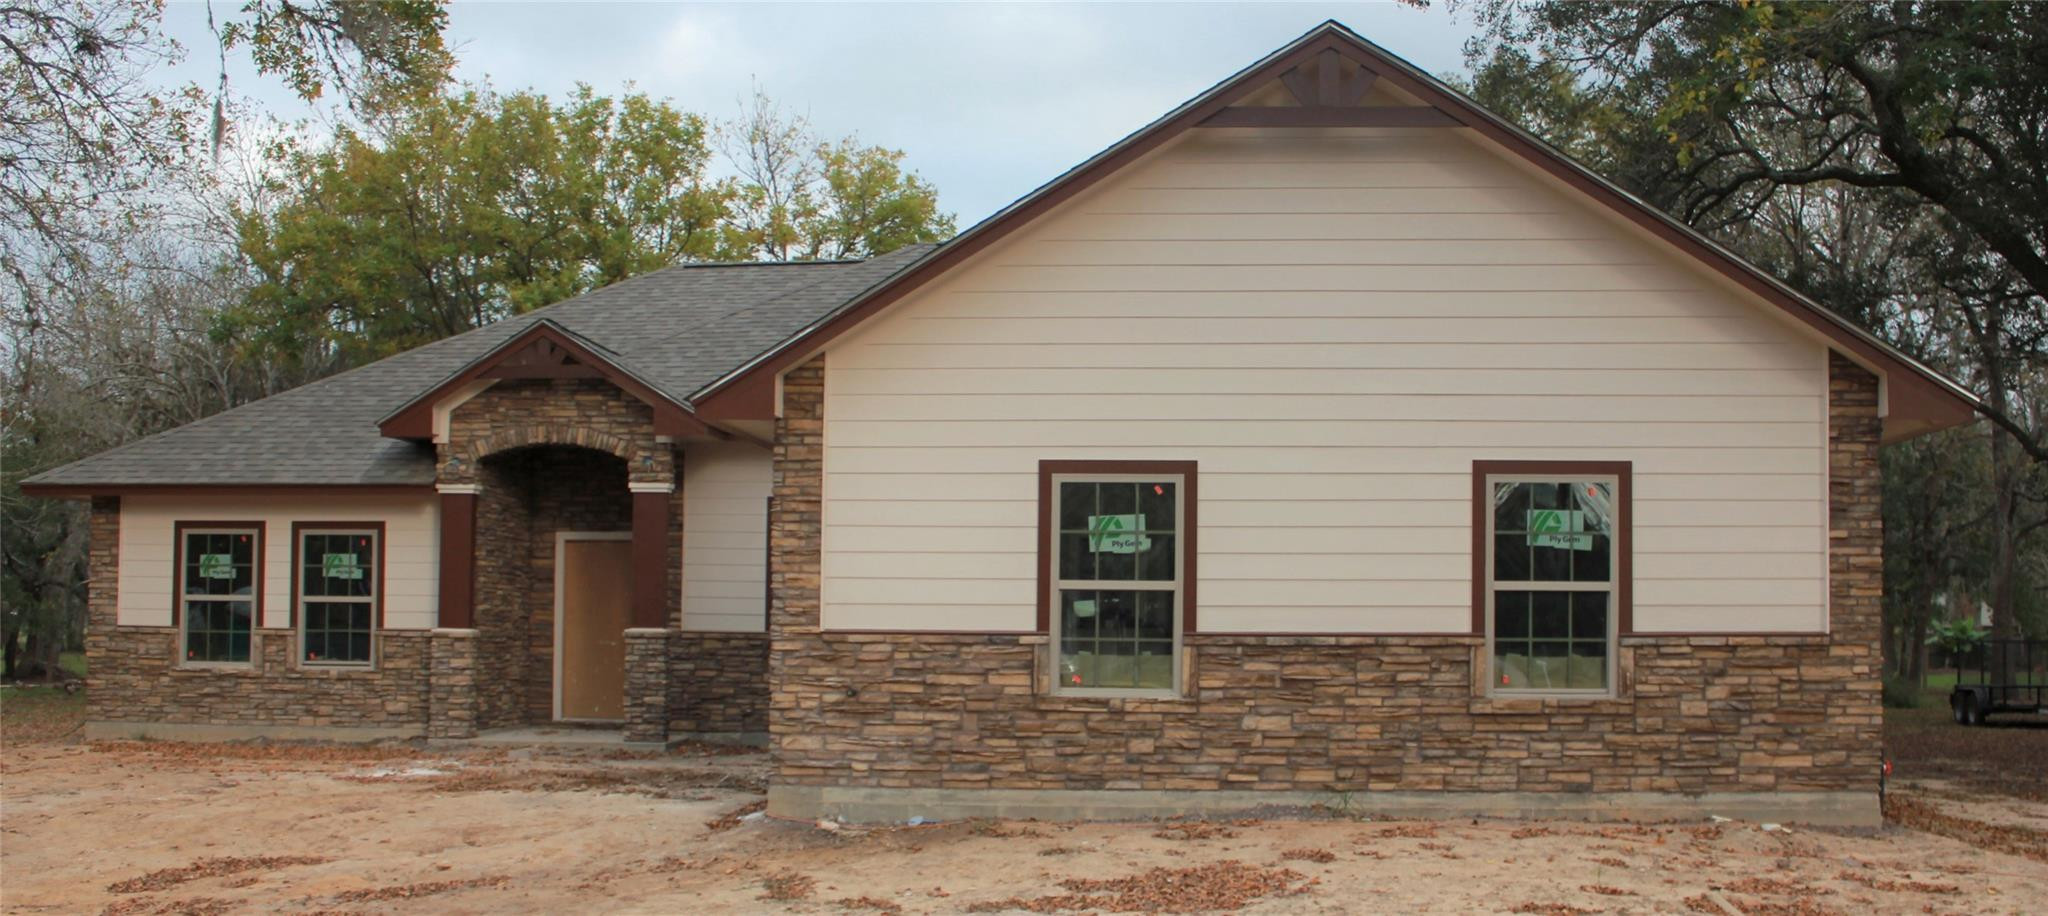 212 N Mahan Street Property Photo - Richwood, TX real estate listing